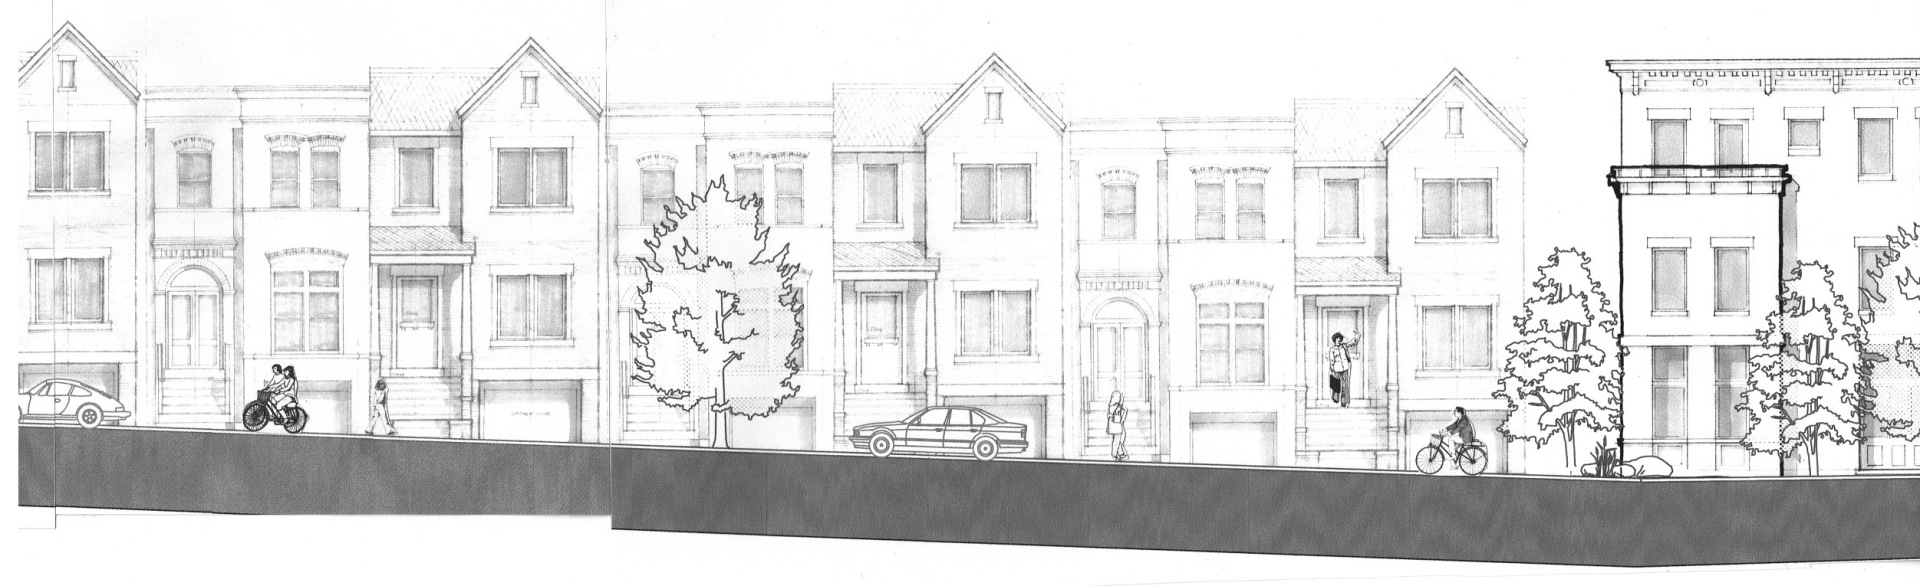 Proposed Townhouse Development for Hyattsville MD